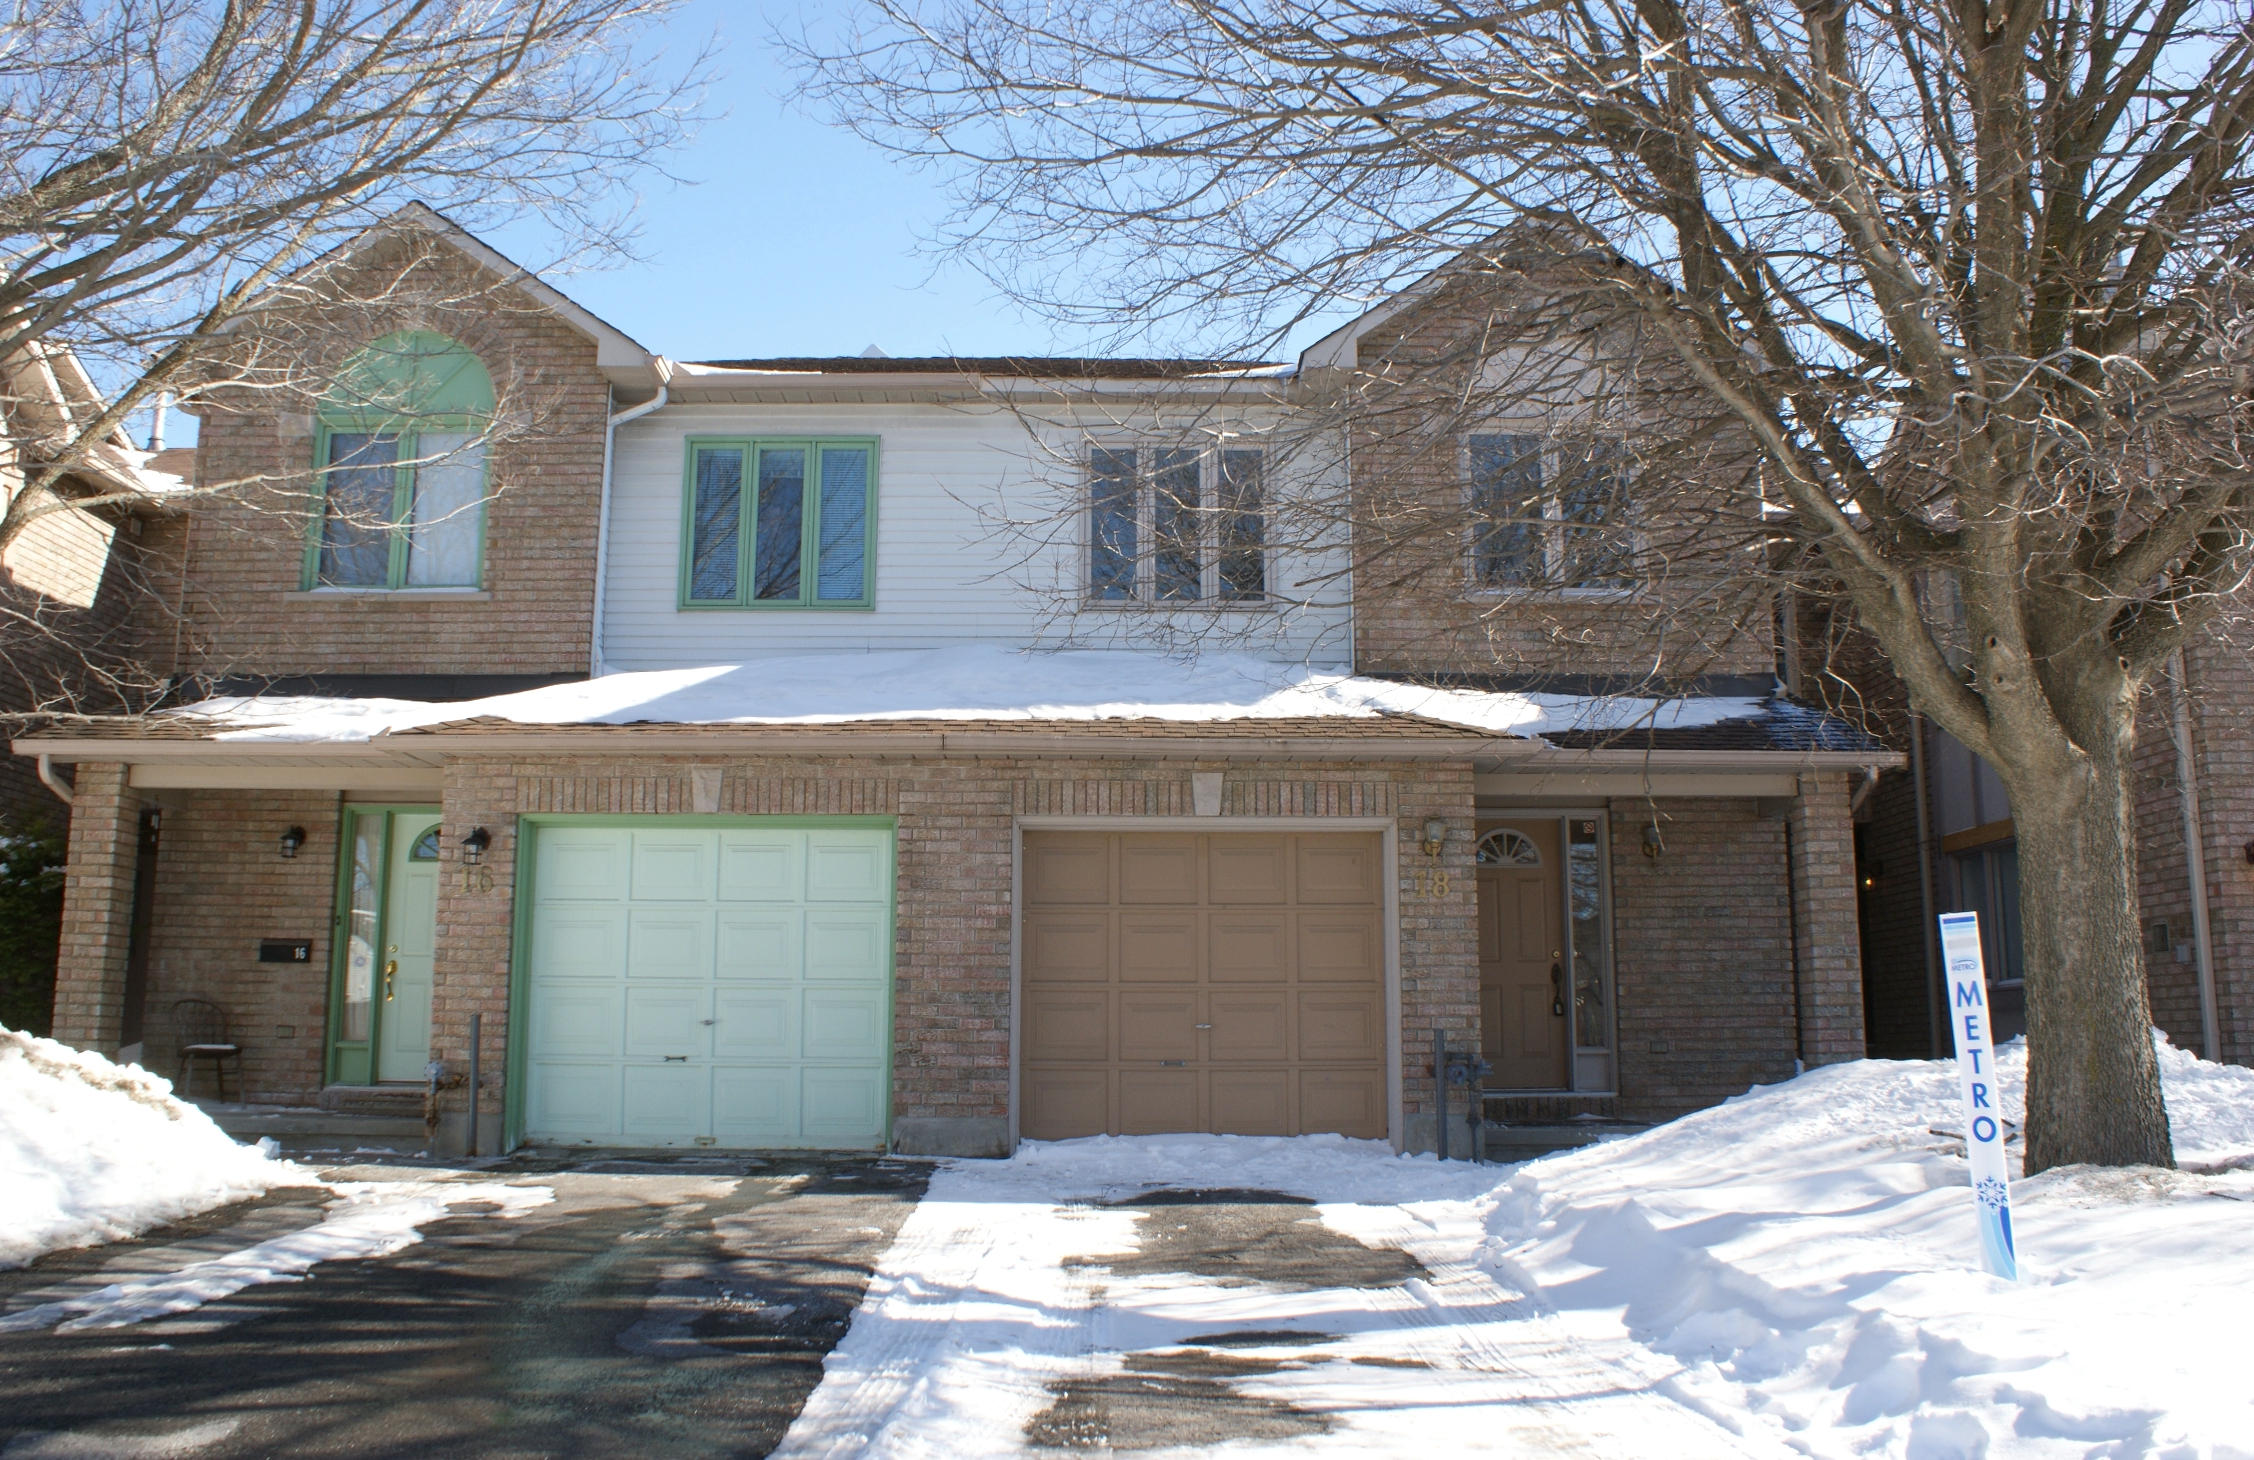 18 Hemmingwood Way – Sold March 2017